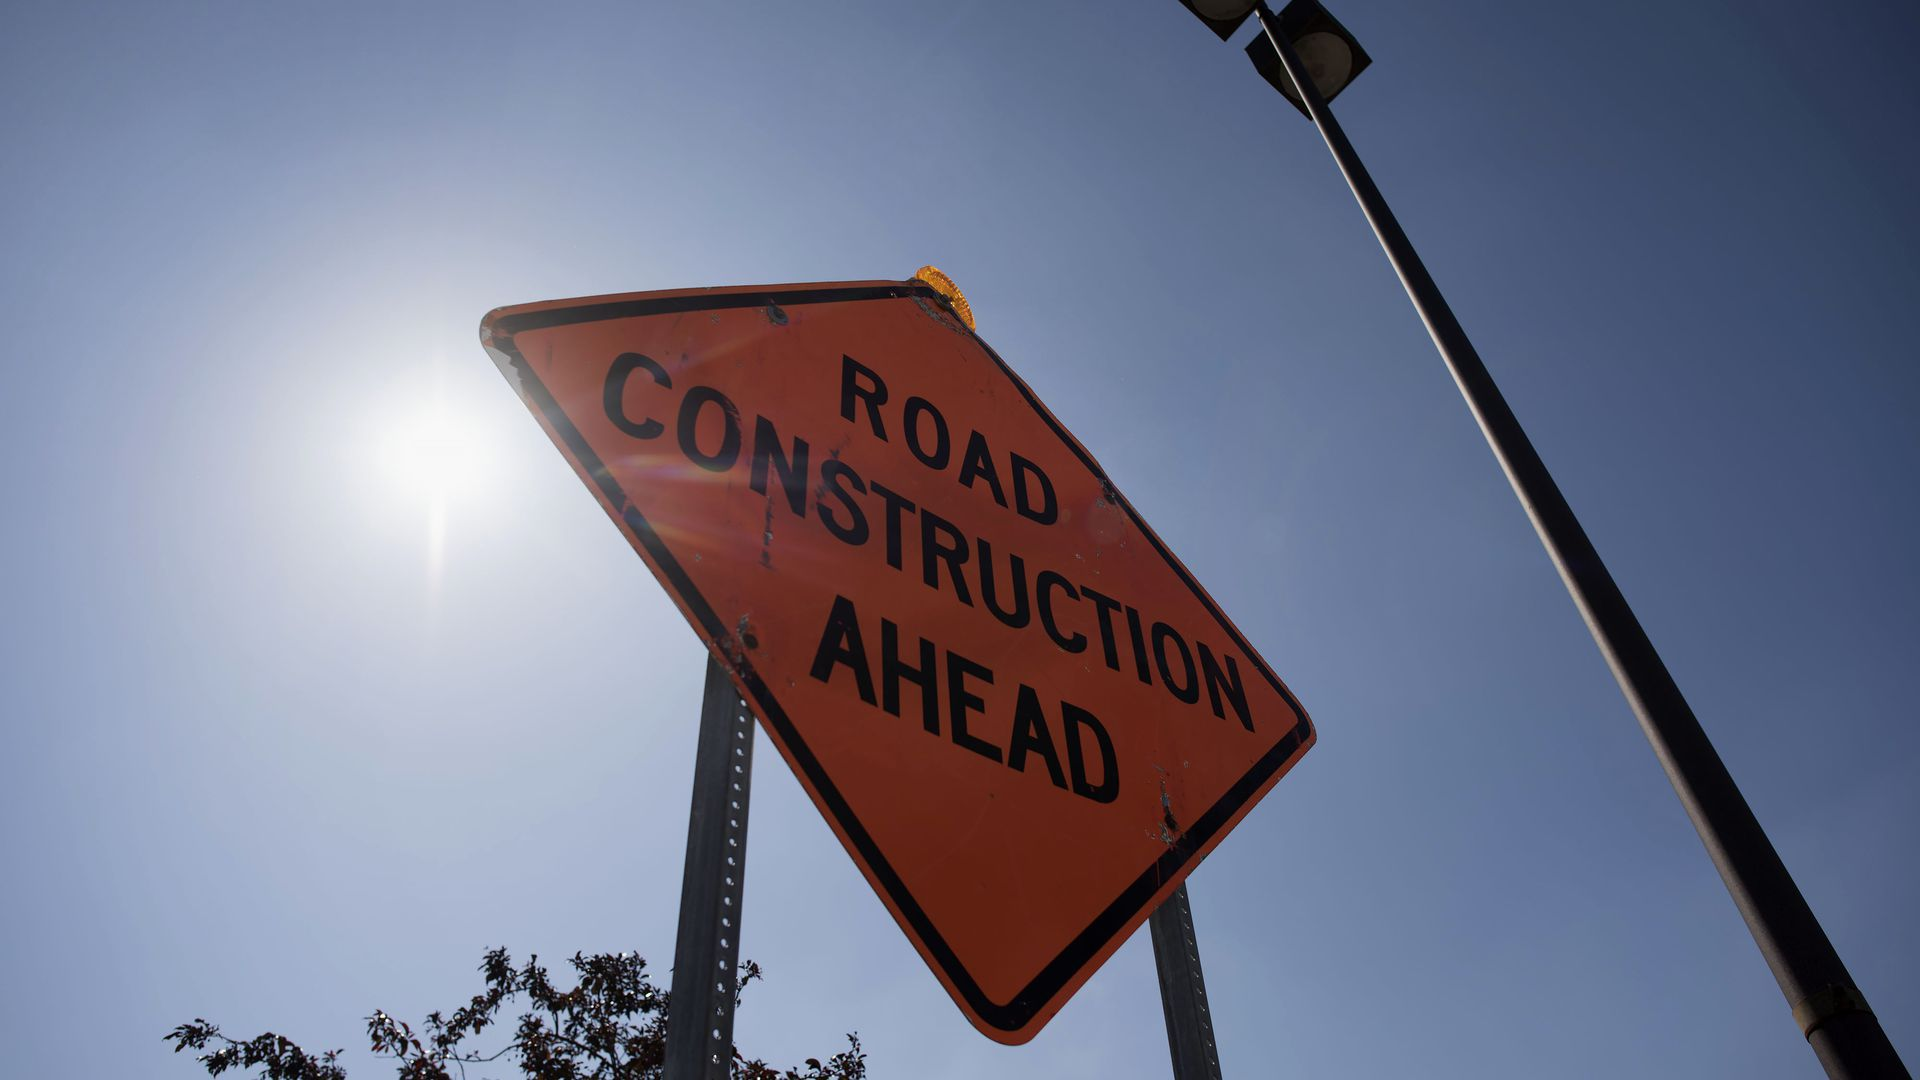 A sign warning of road construction ahead.